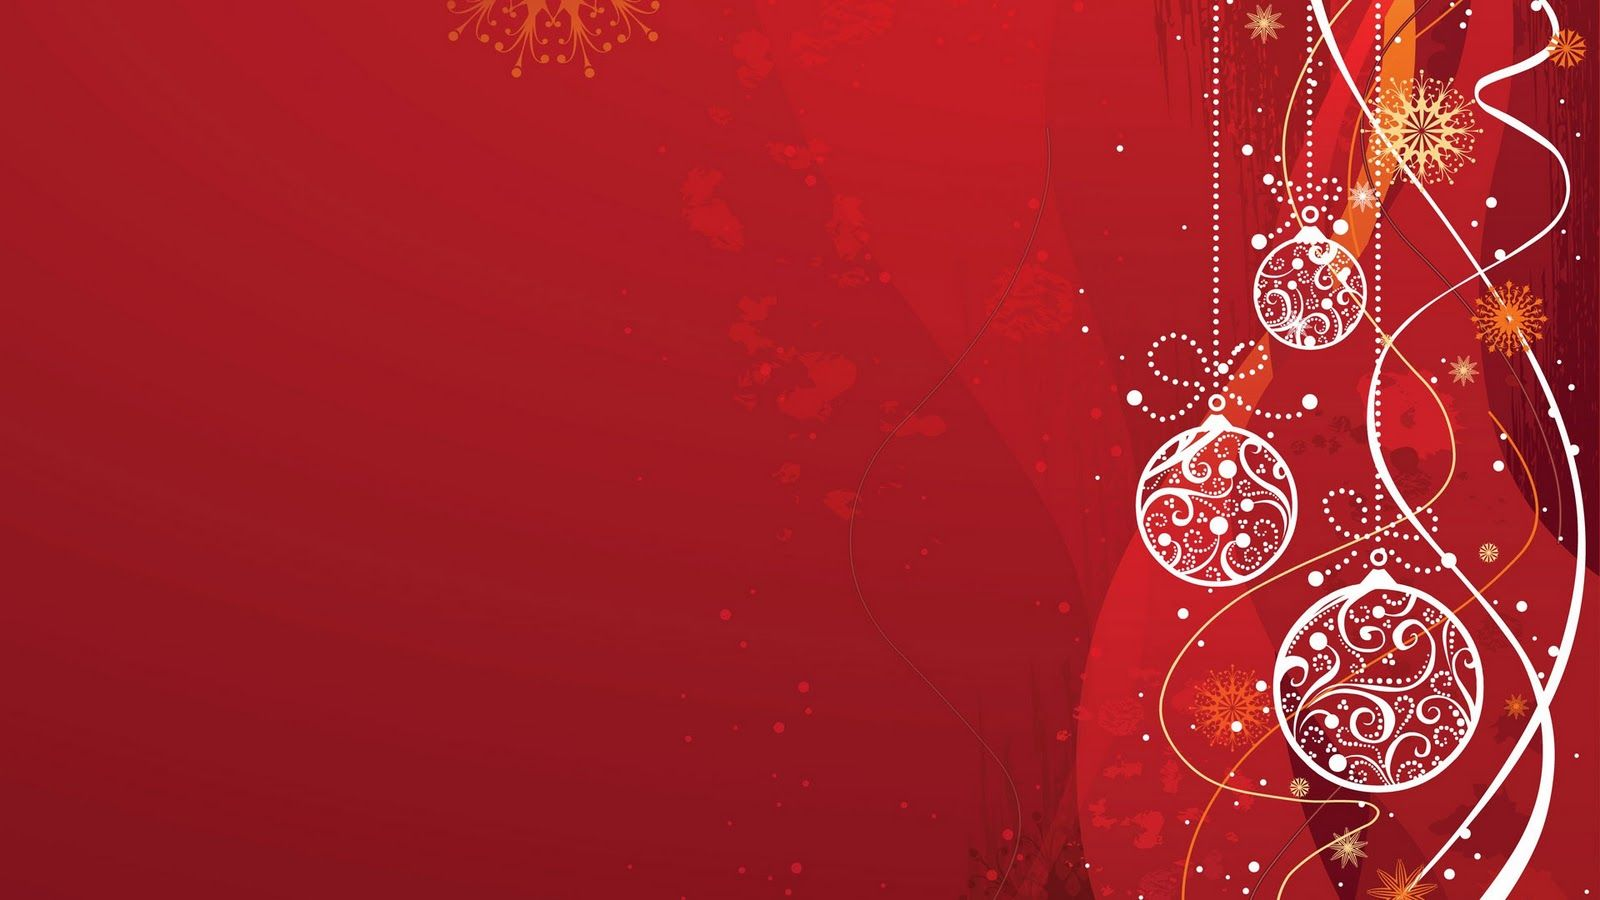 Christmas Background For Pictures Red christmas